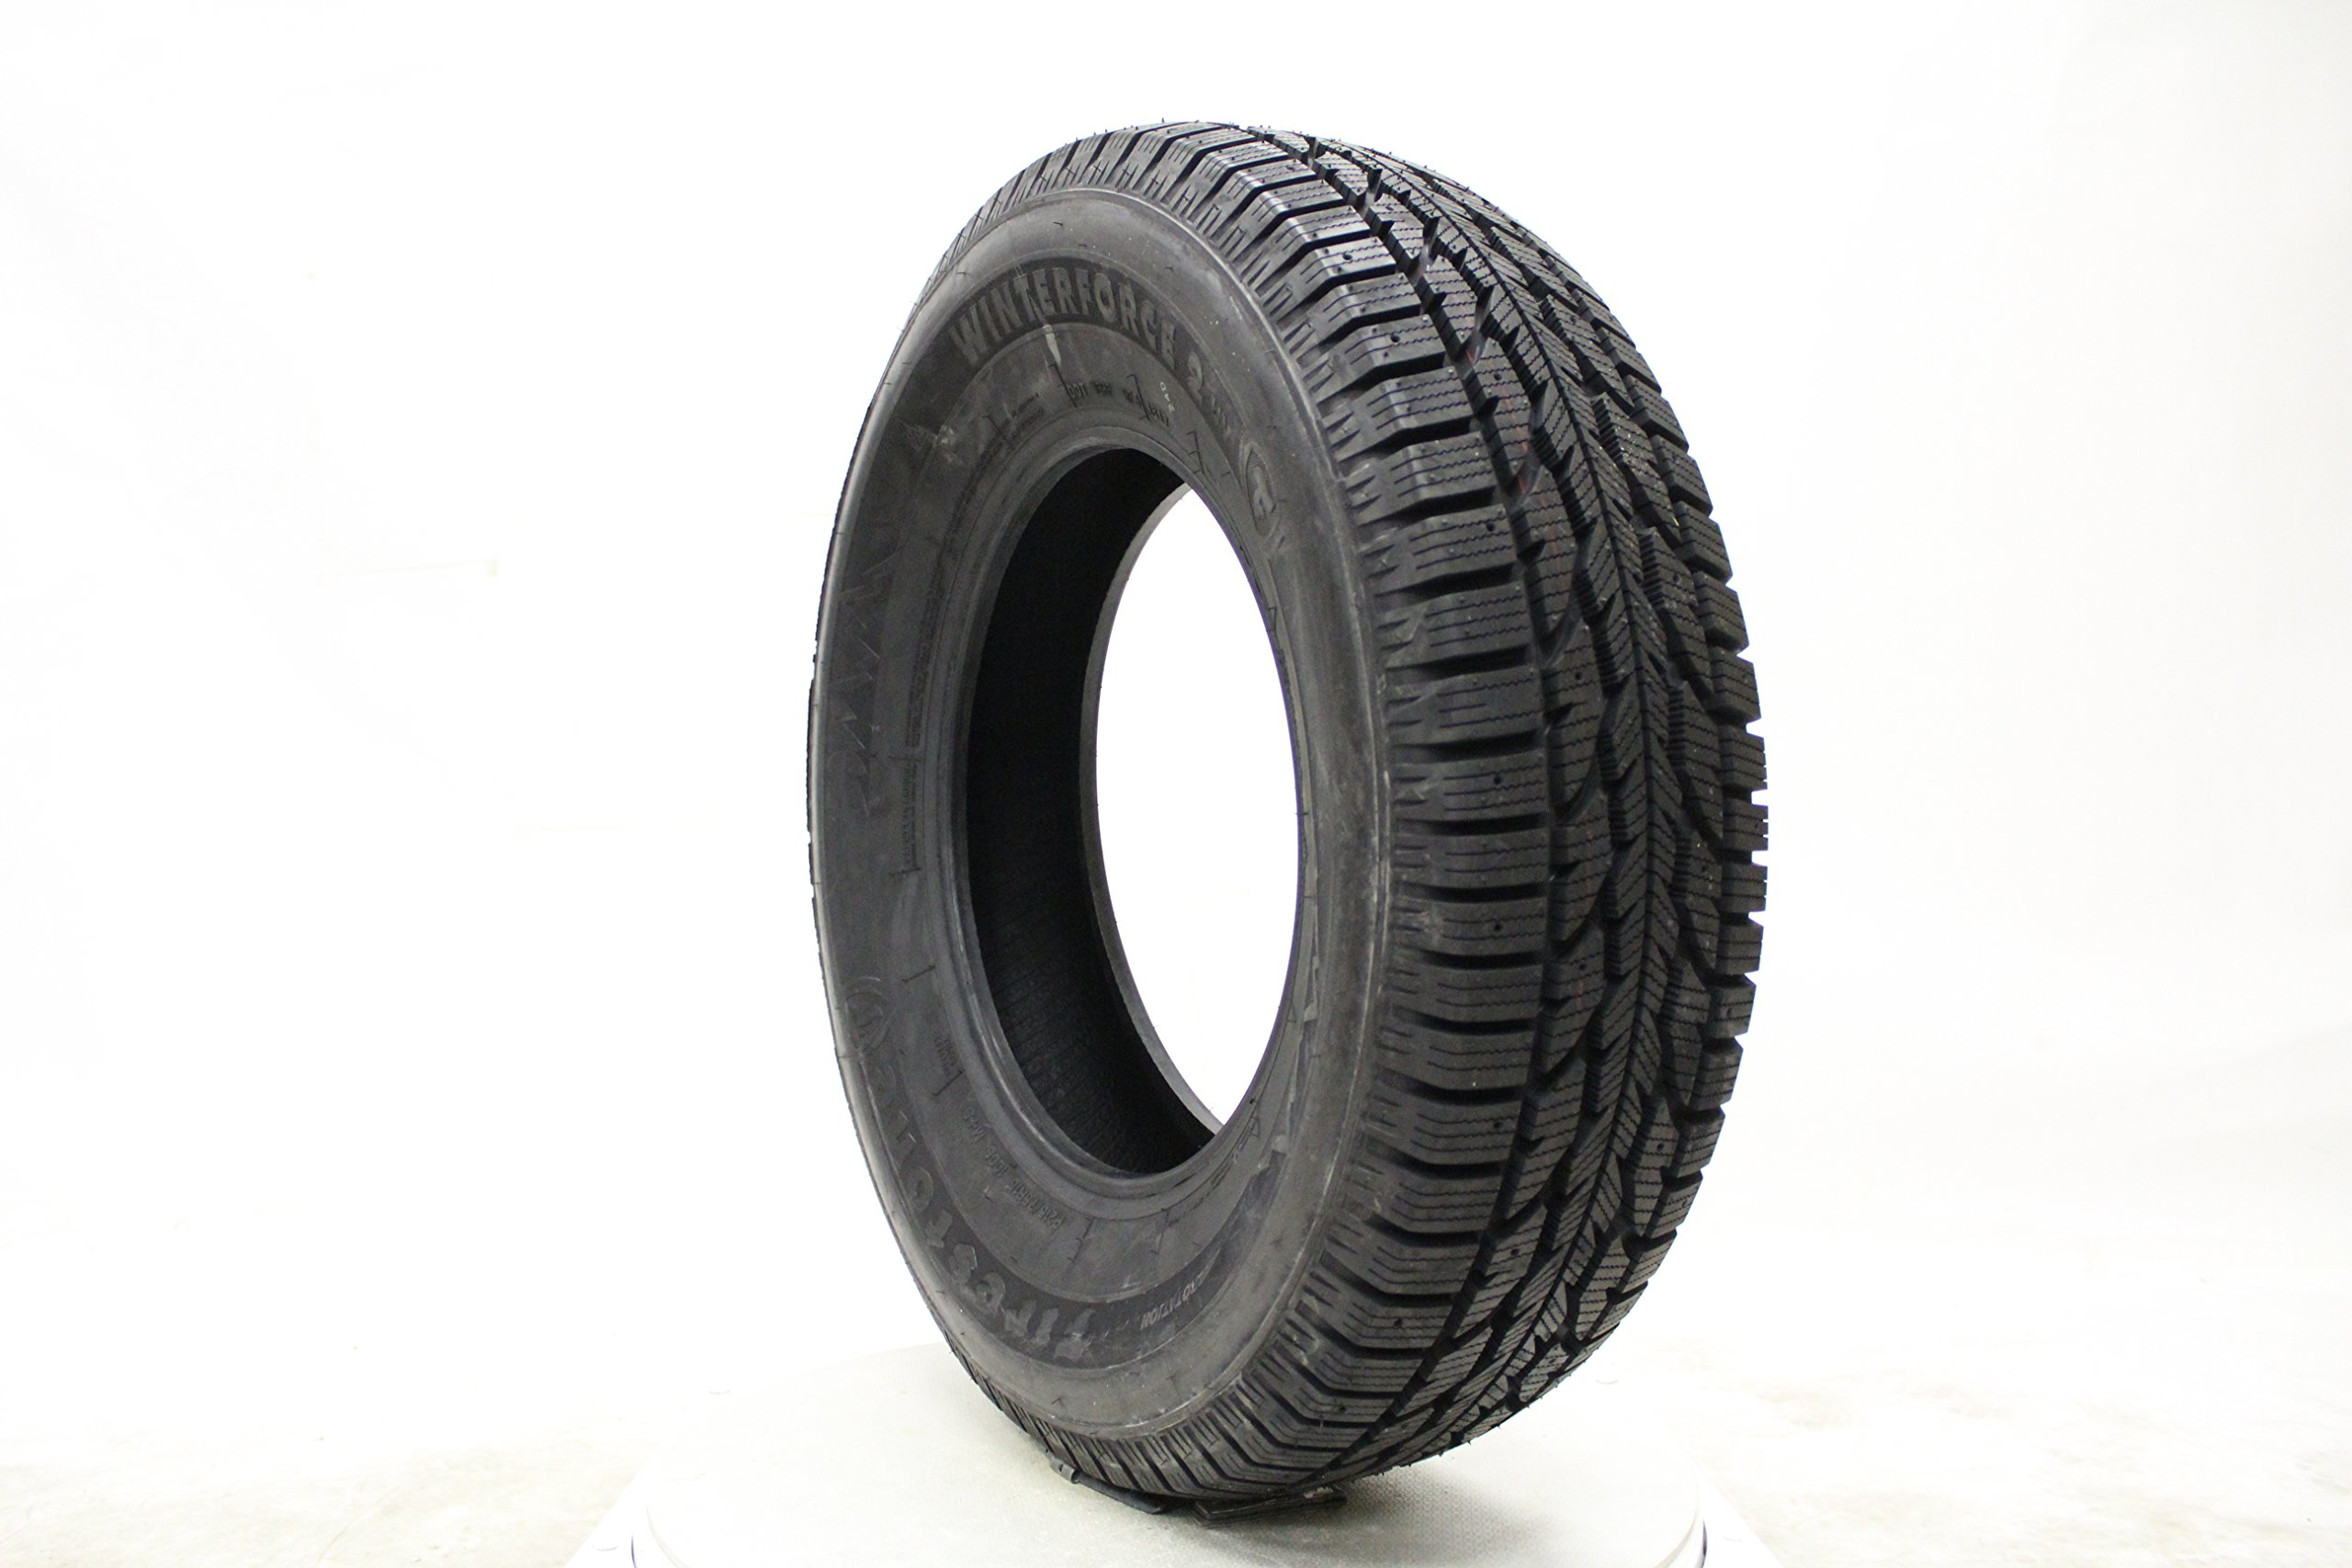 Firestone Winterforce 2 UV Studable-Winter Radial Tire - 225/70R16 103S by Firestone